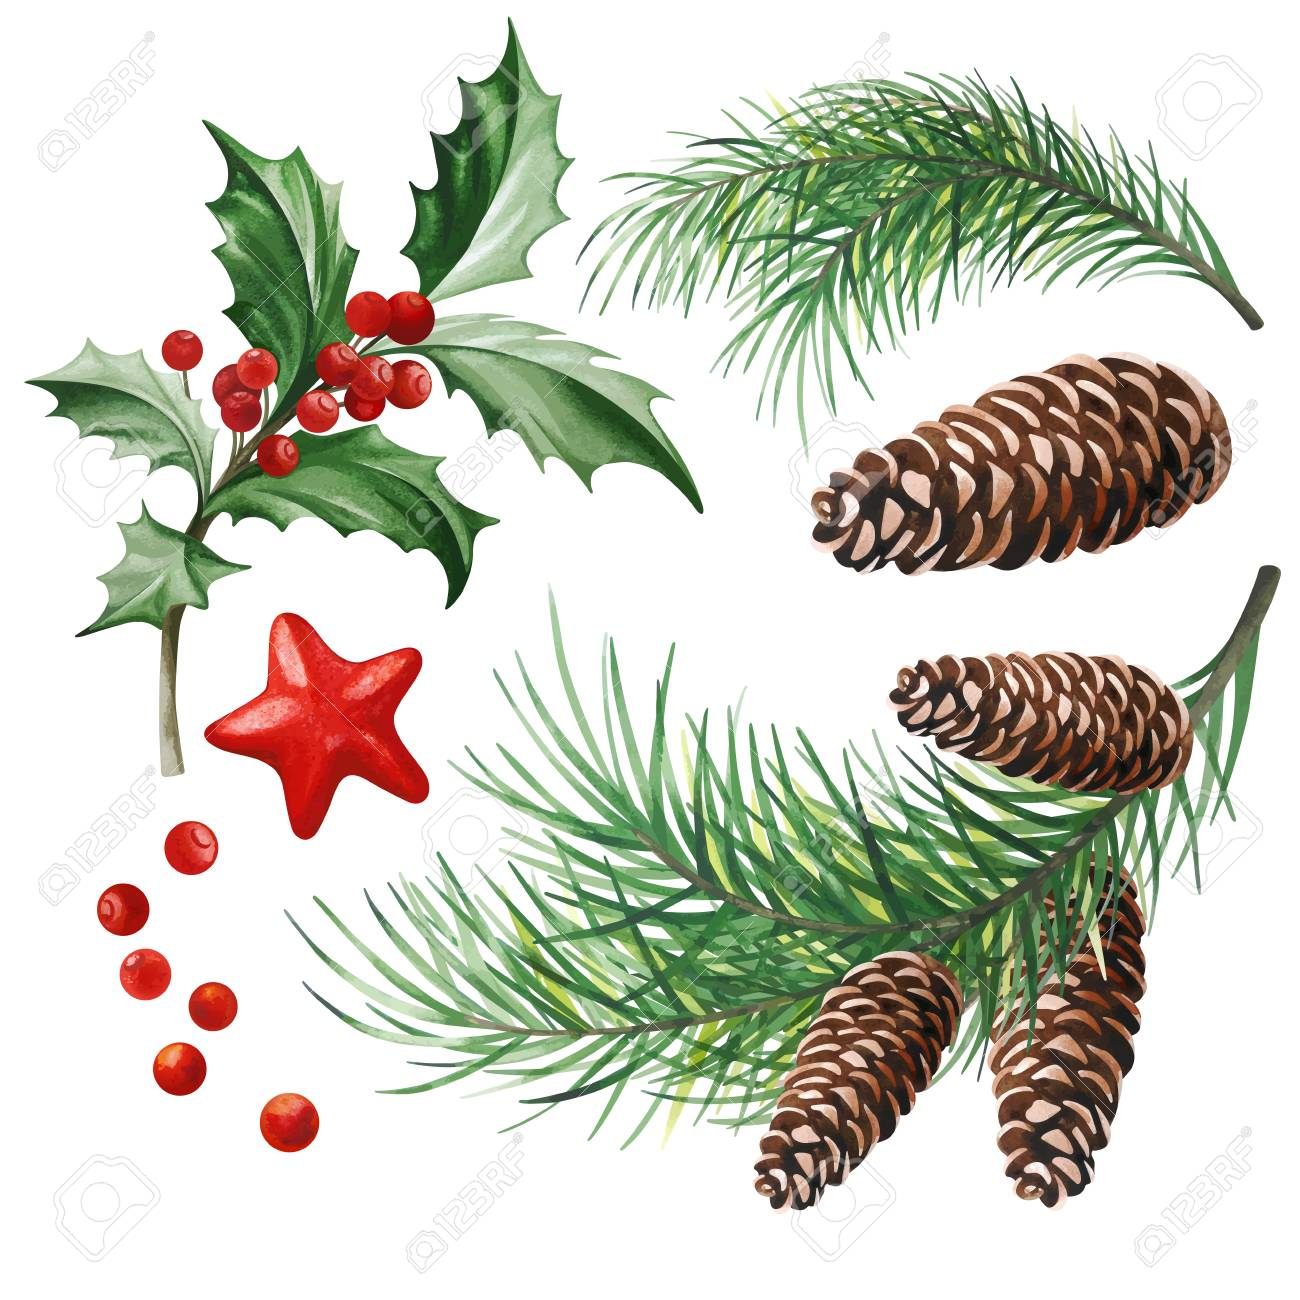 Christmas Symbols Holly Leaves Christmas Tree With Cones And